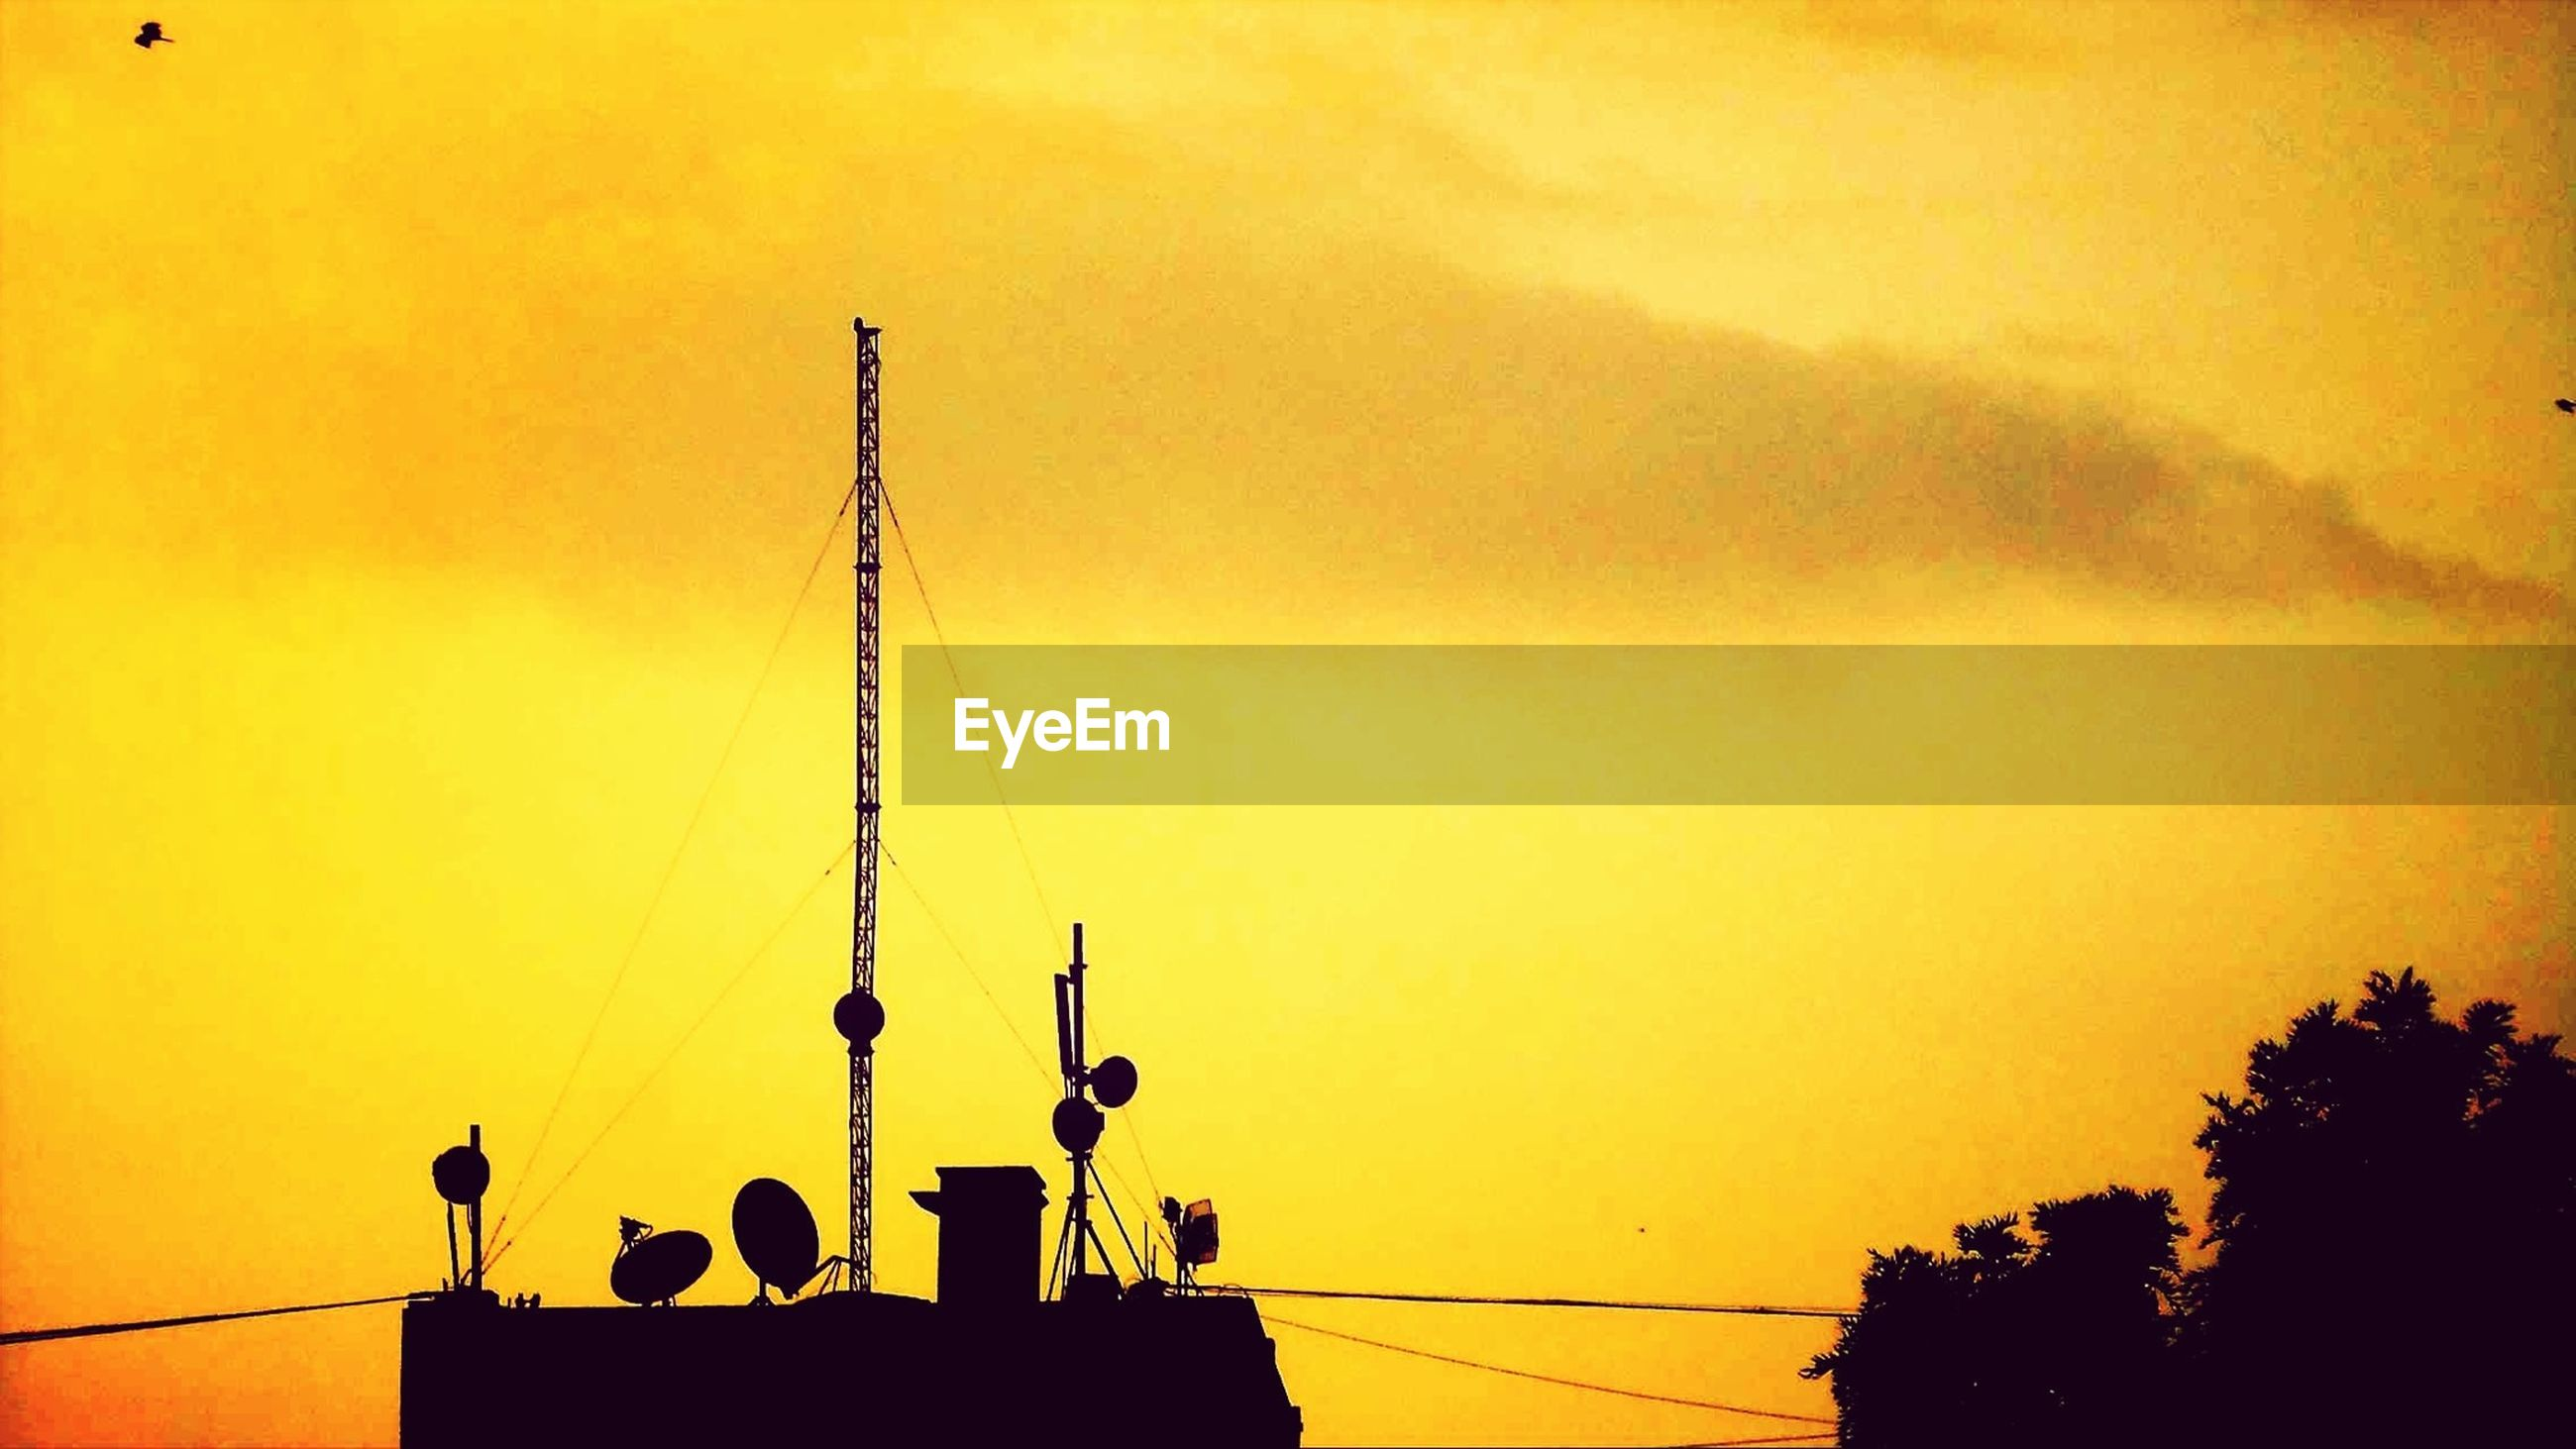 sunset, silhouette, architecture, orange color, built structure, building exterior, low angle view, sky, communications tower, street light, power line, spire, yellow, communication, copy space, outdoors, lighting equipment, high section, tower, travel destinations